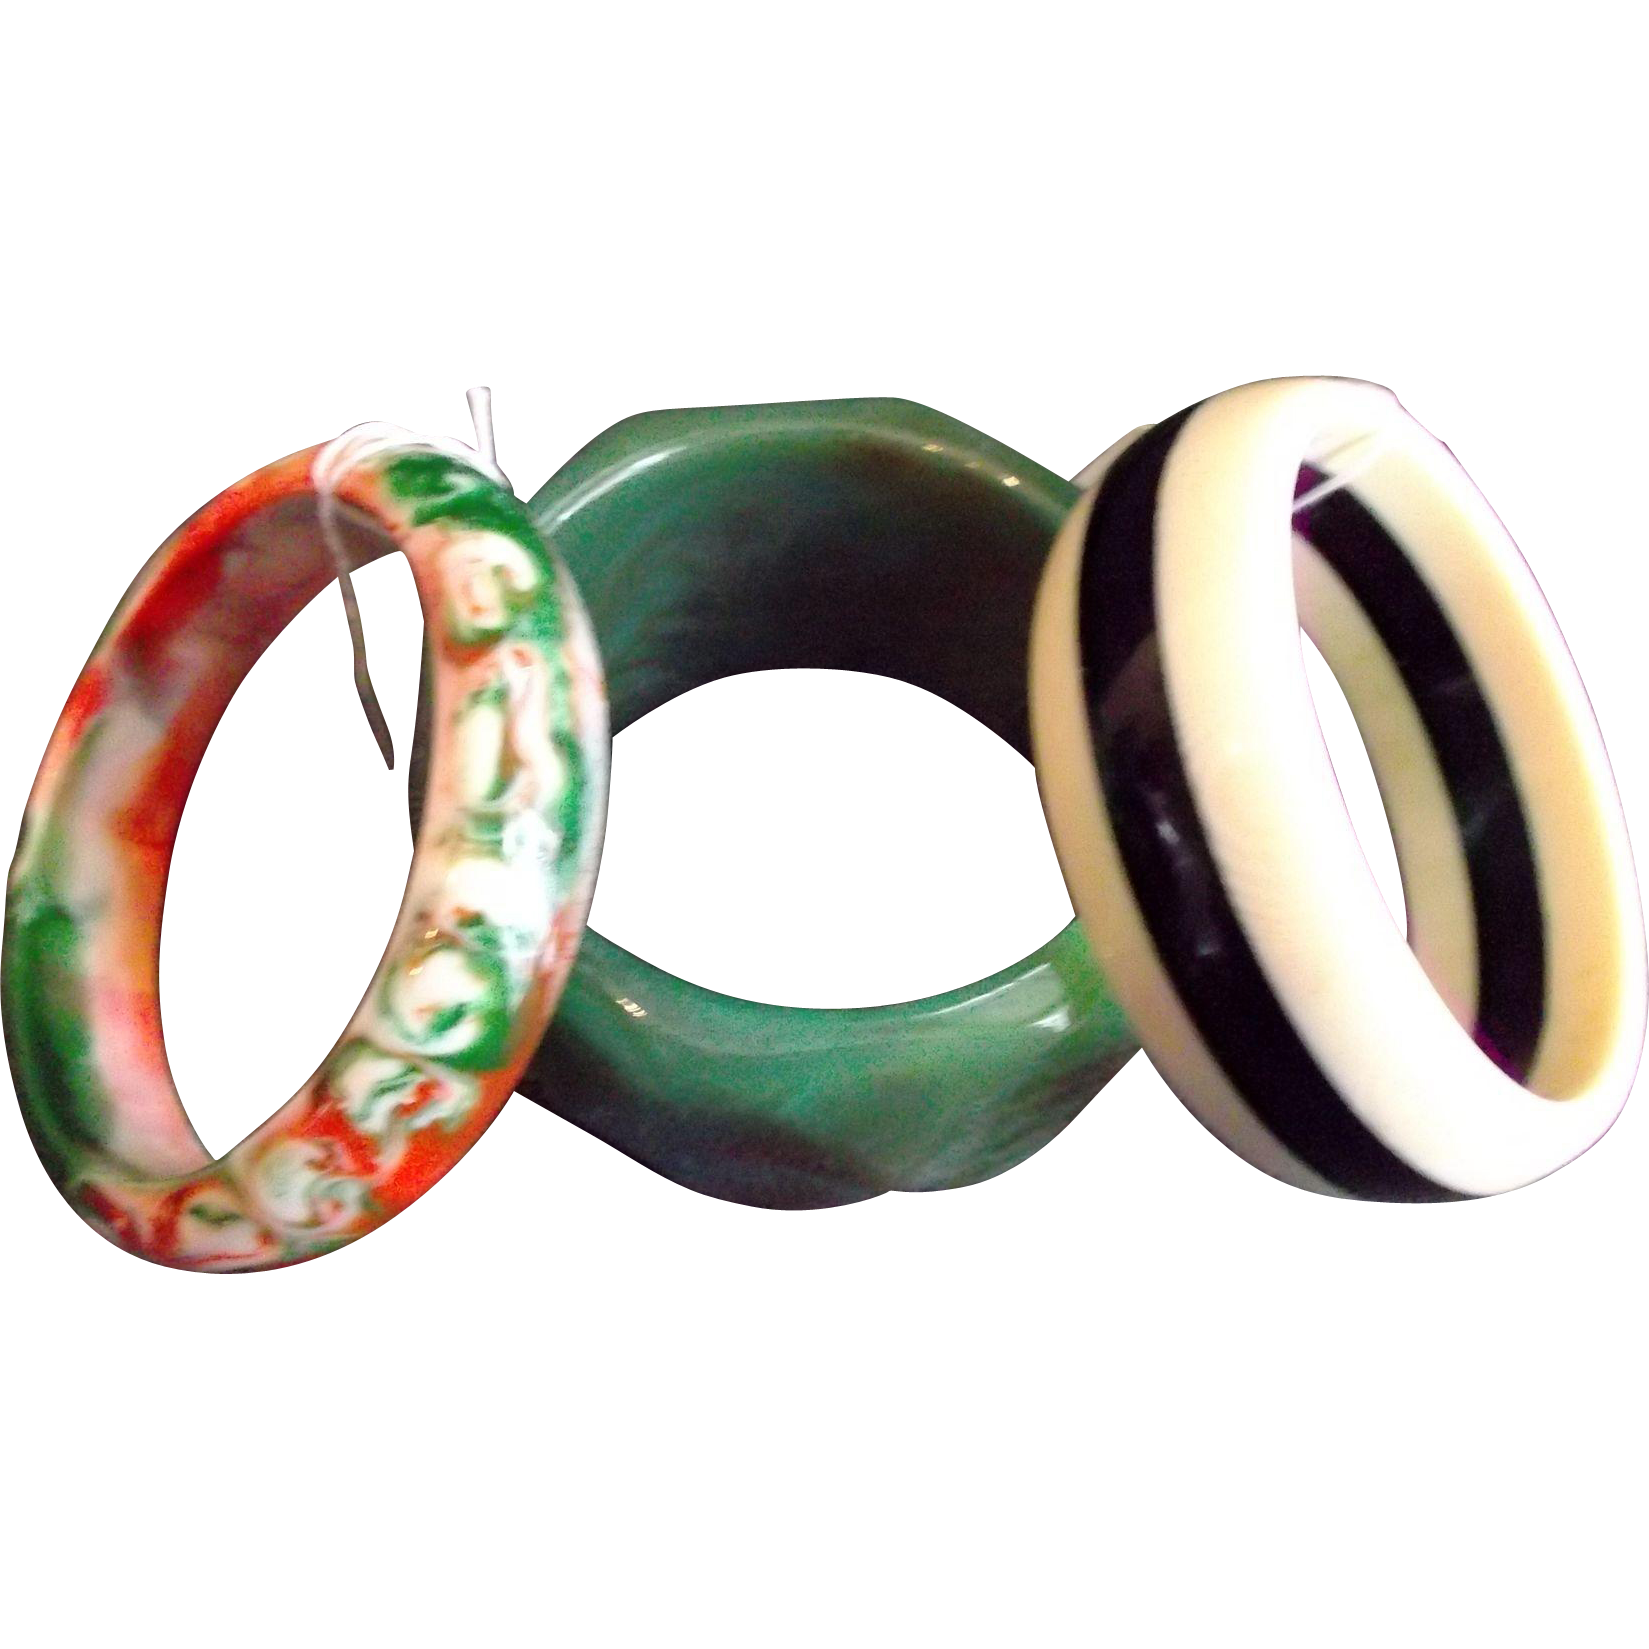 Three Vintage Plastic Lucite Bangles Bracelets Green Cream Orange Black Brown